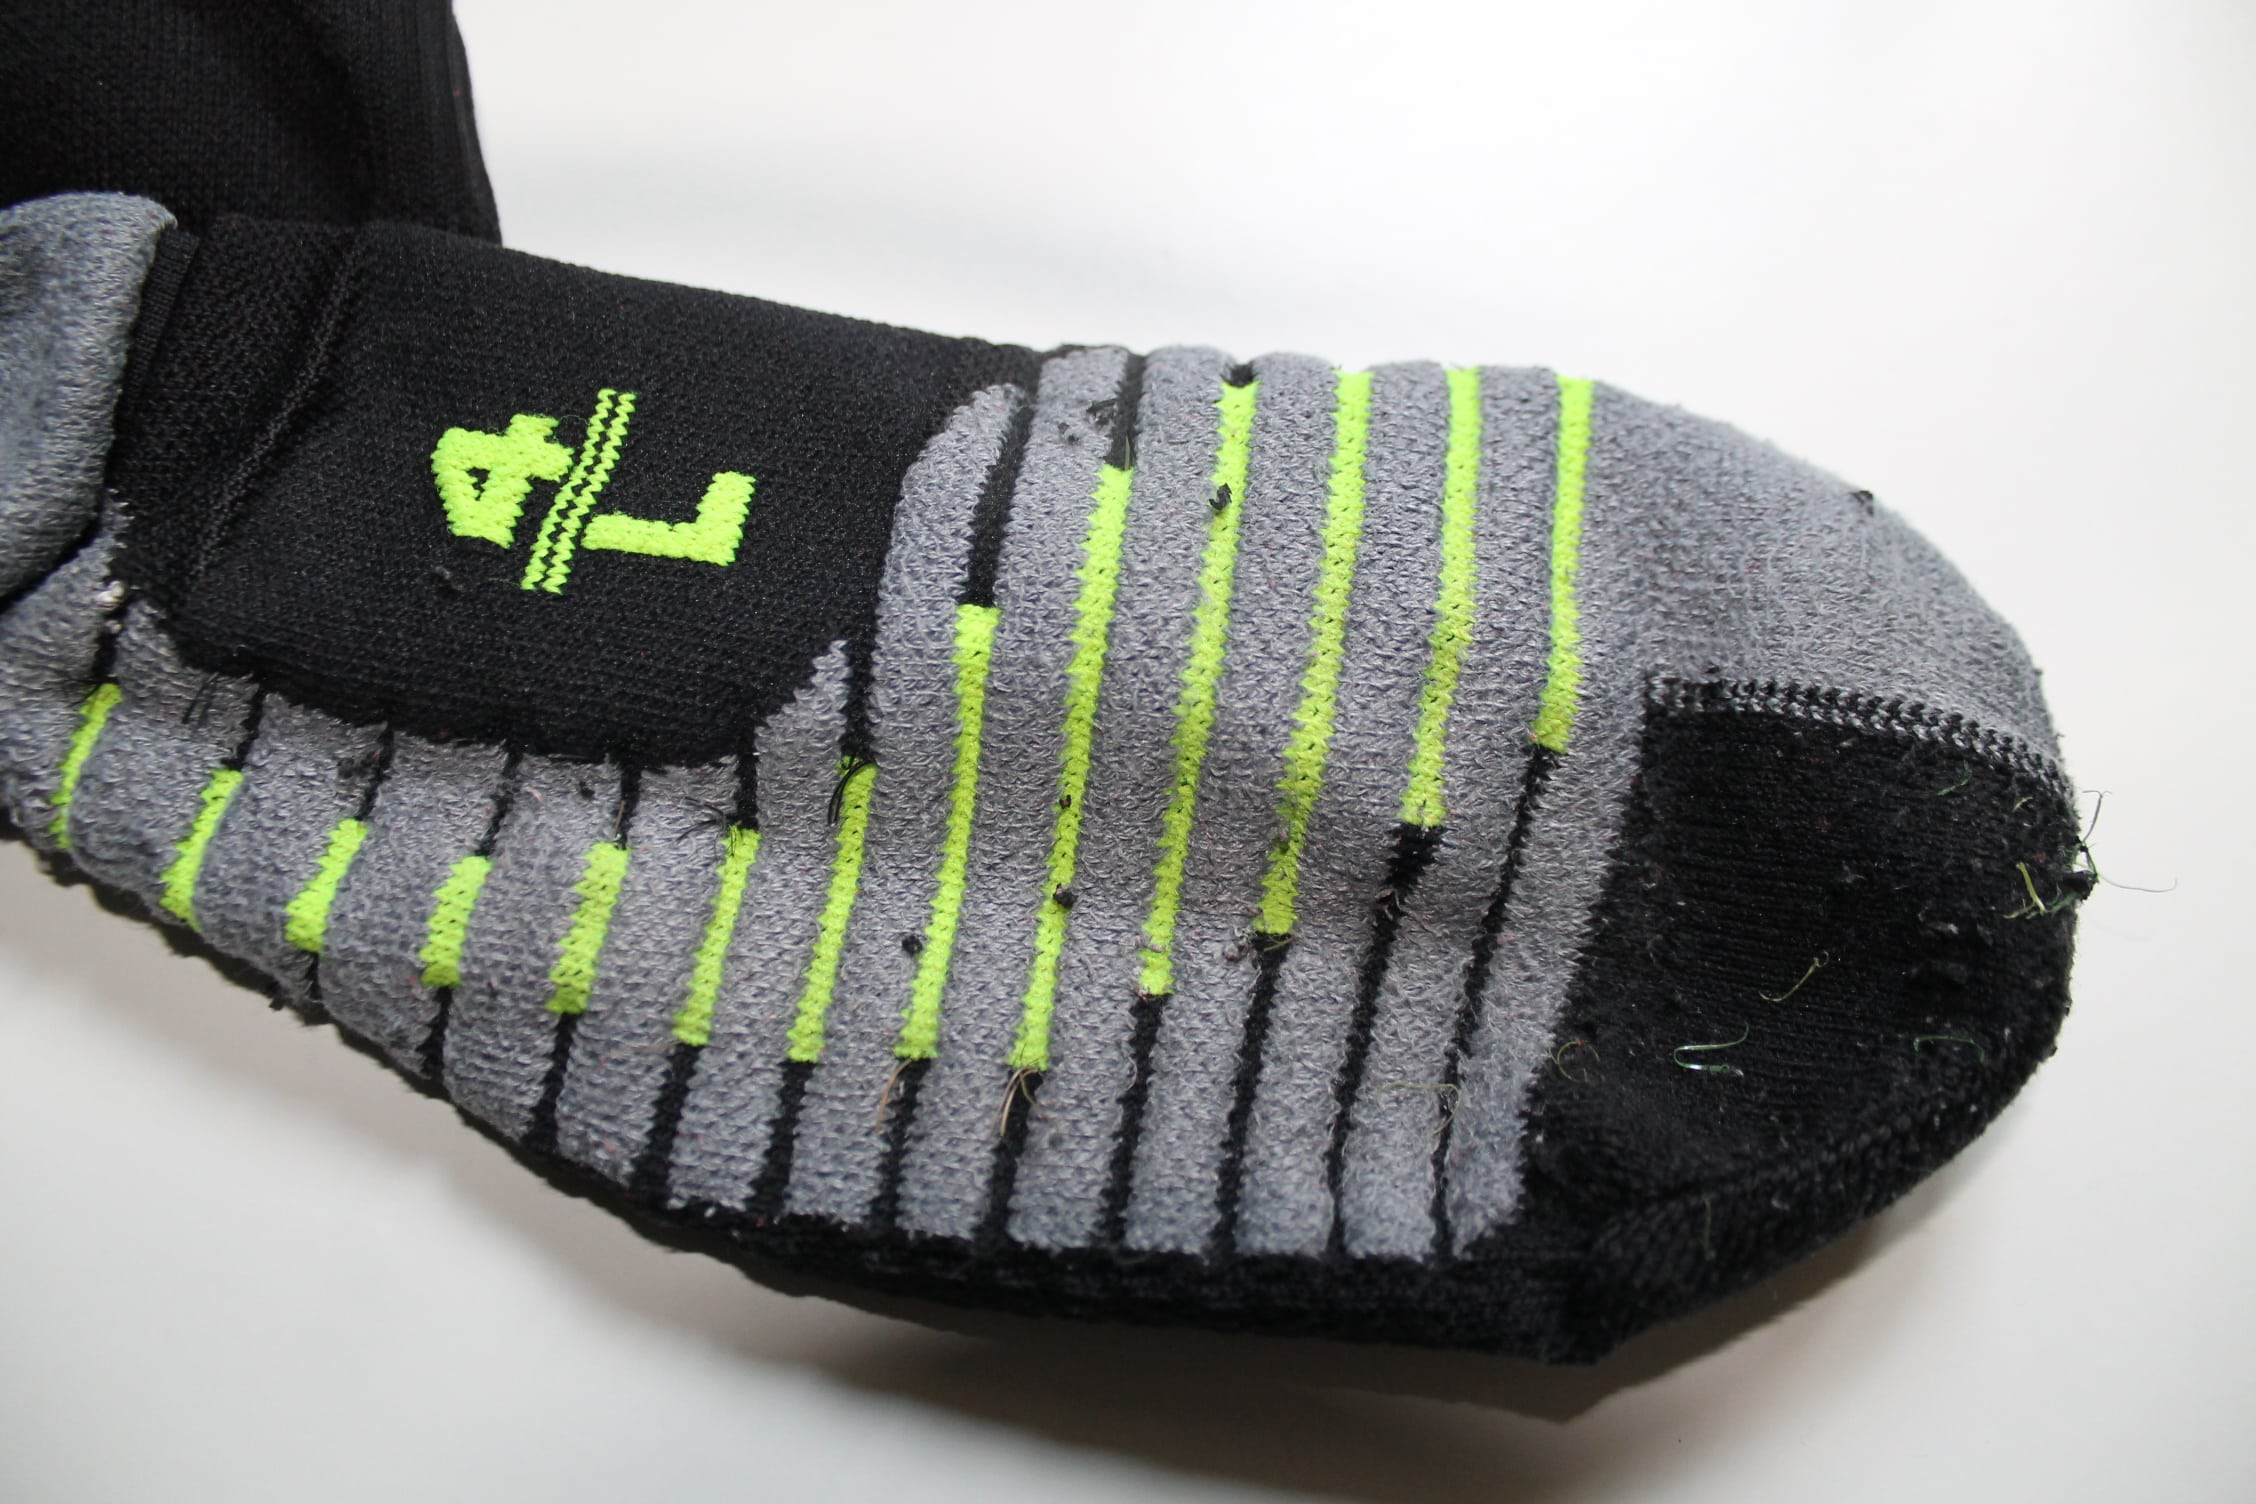 test-chaussettes-nike-grip-img12